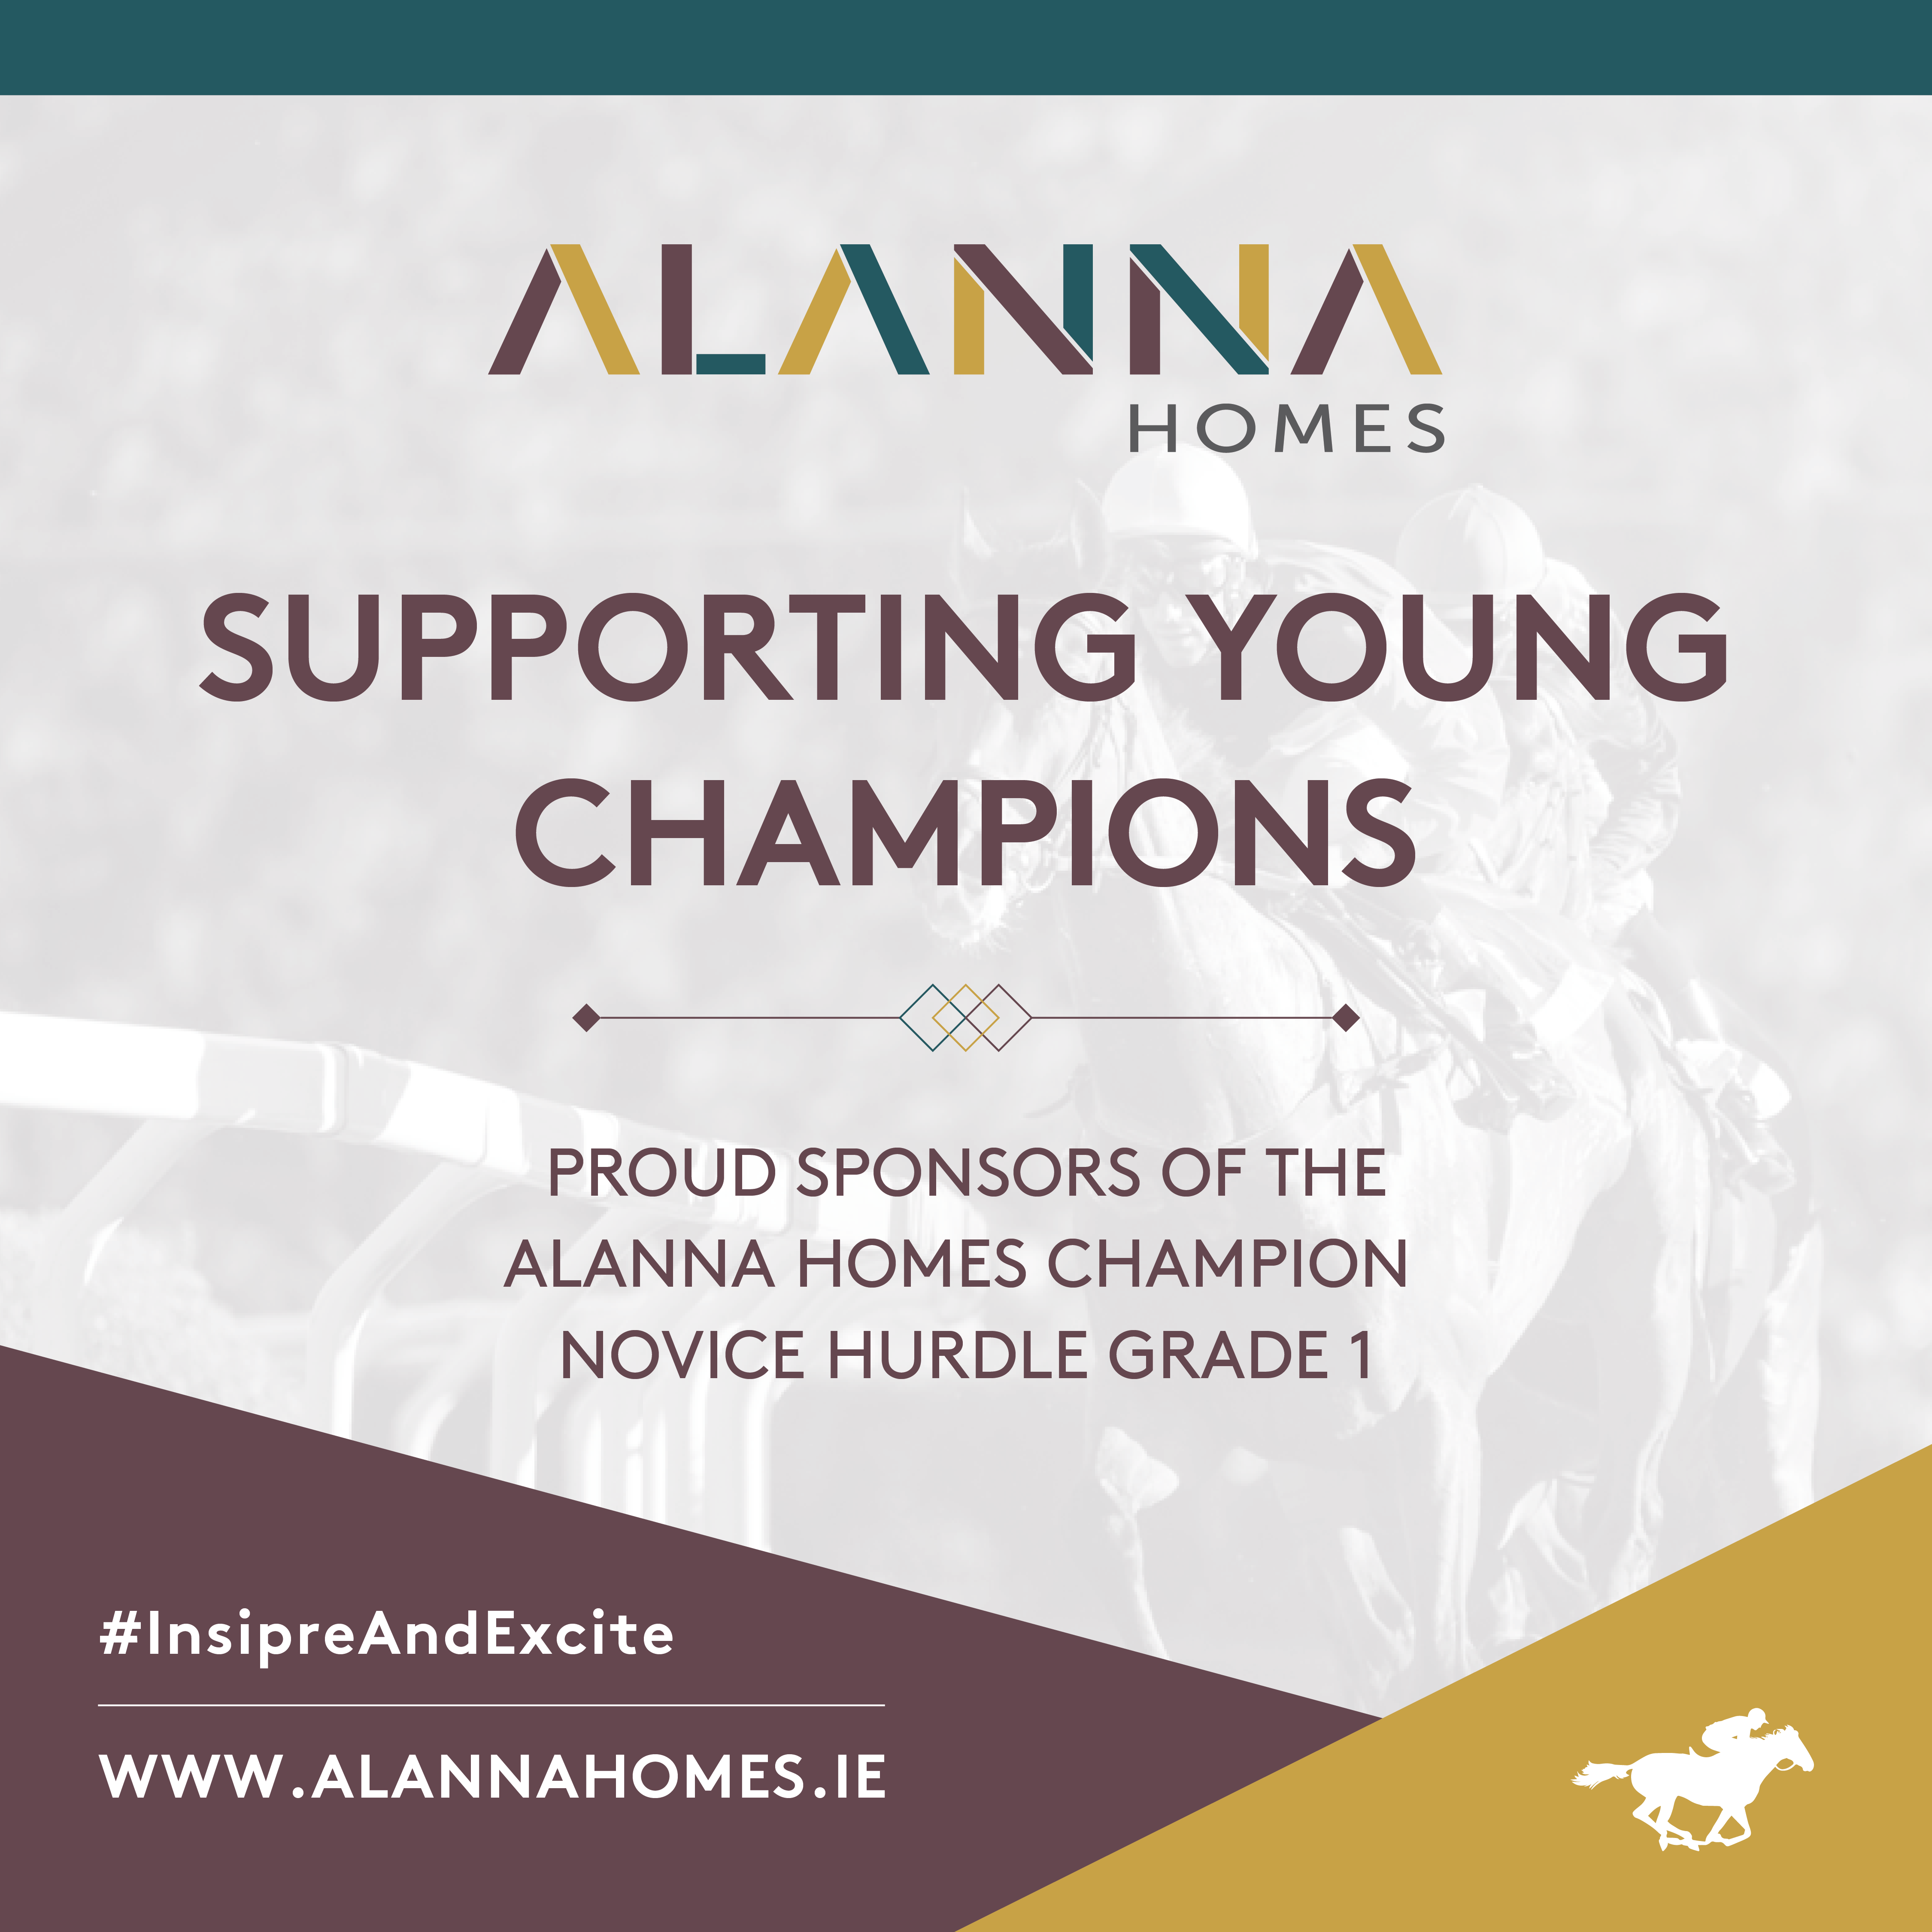 Alanna Homes to Sponsor Grade1 Champion Novice Hurdle at The Punchestown Festival